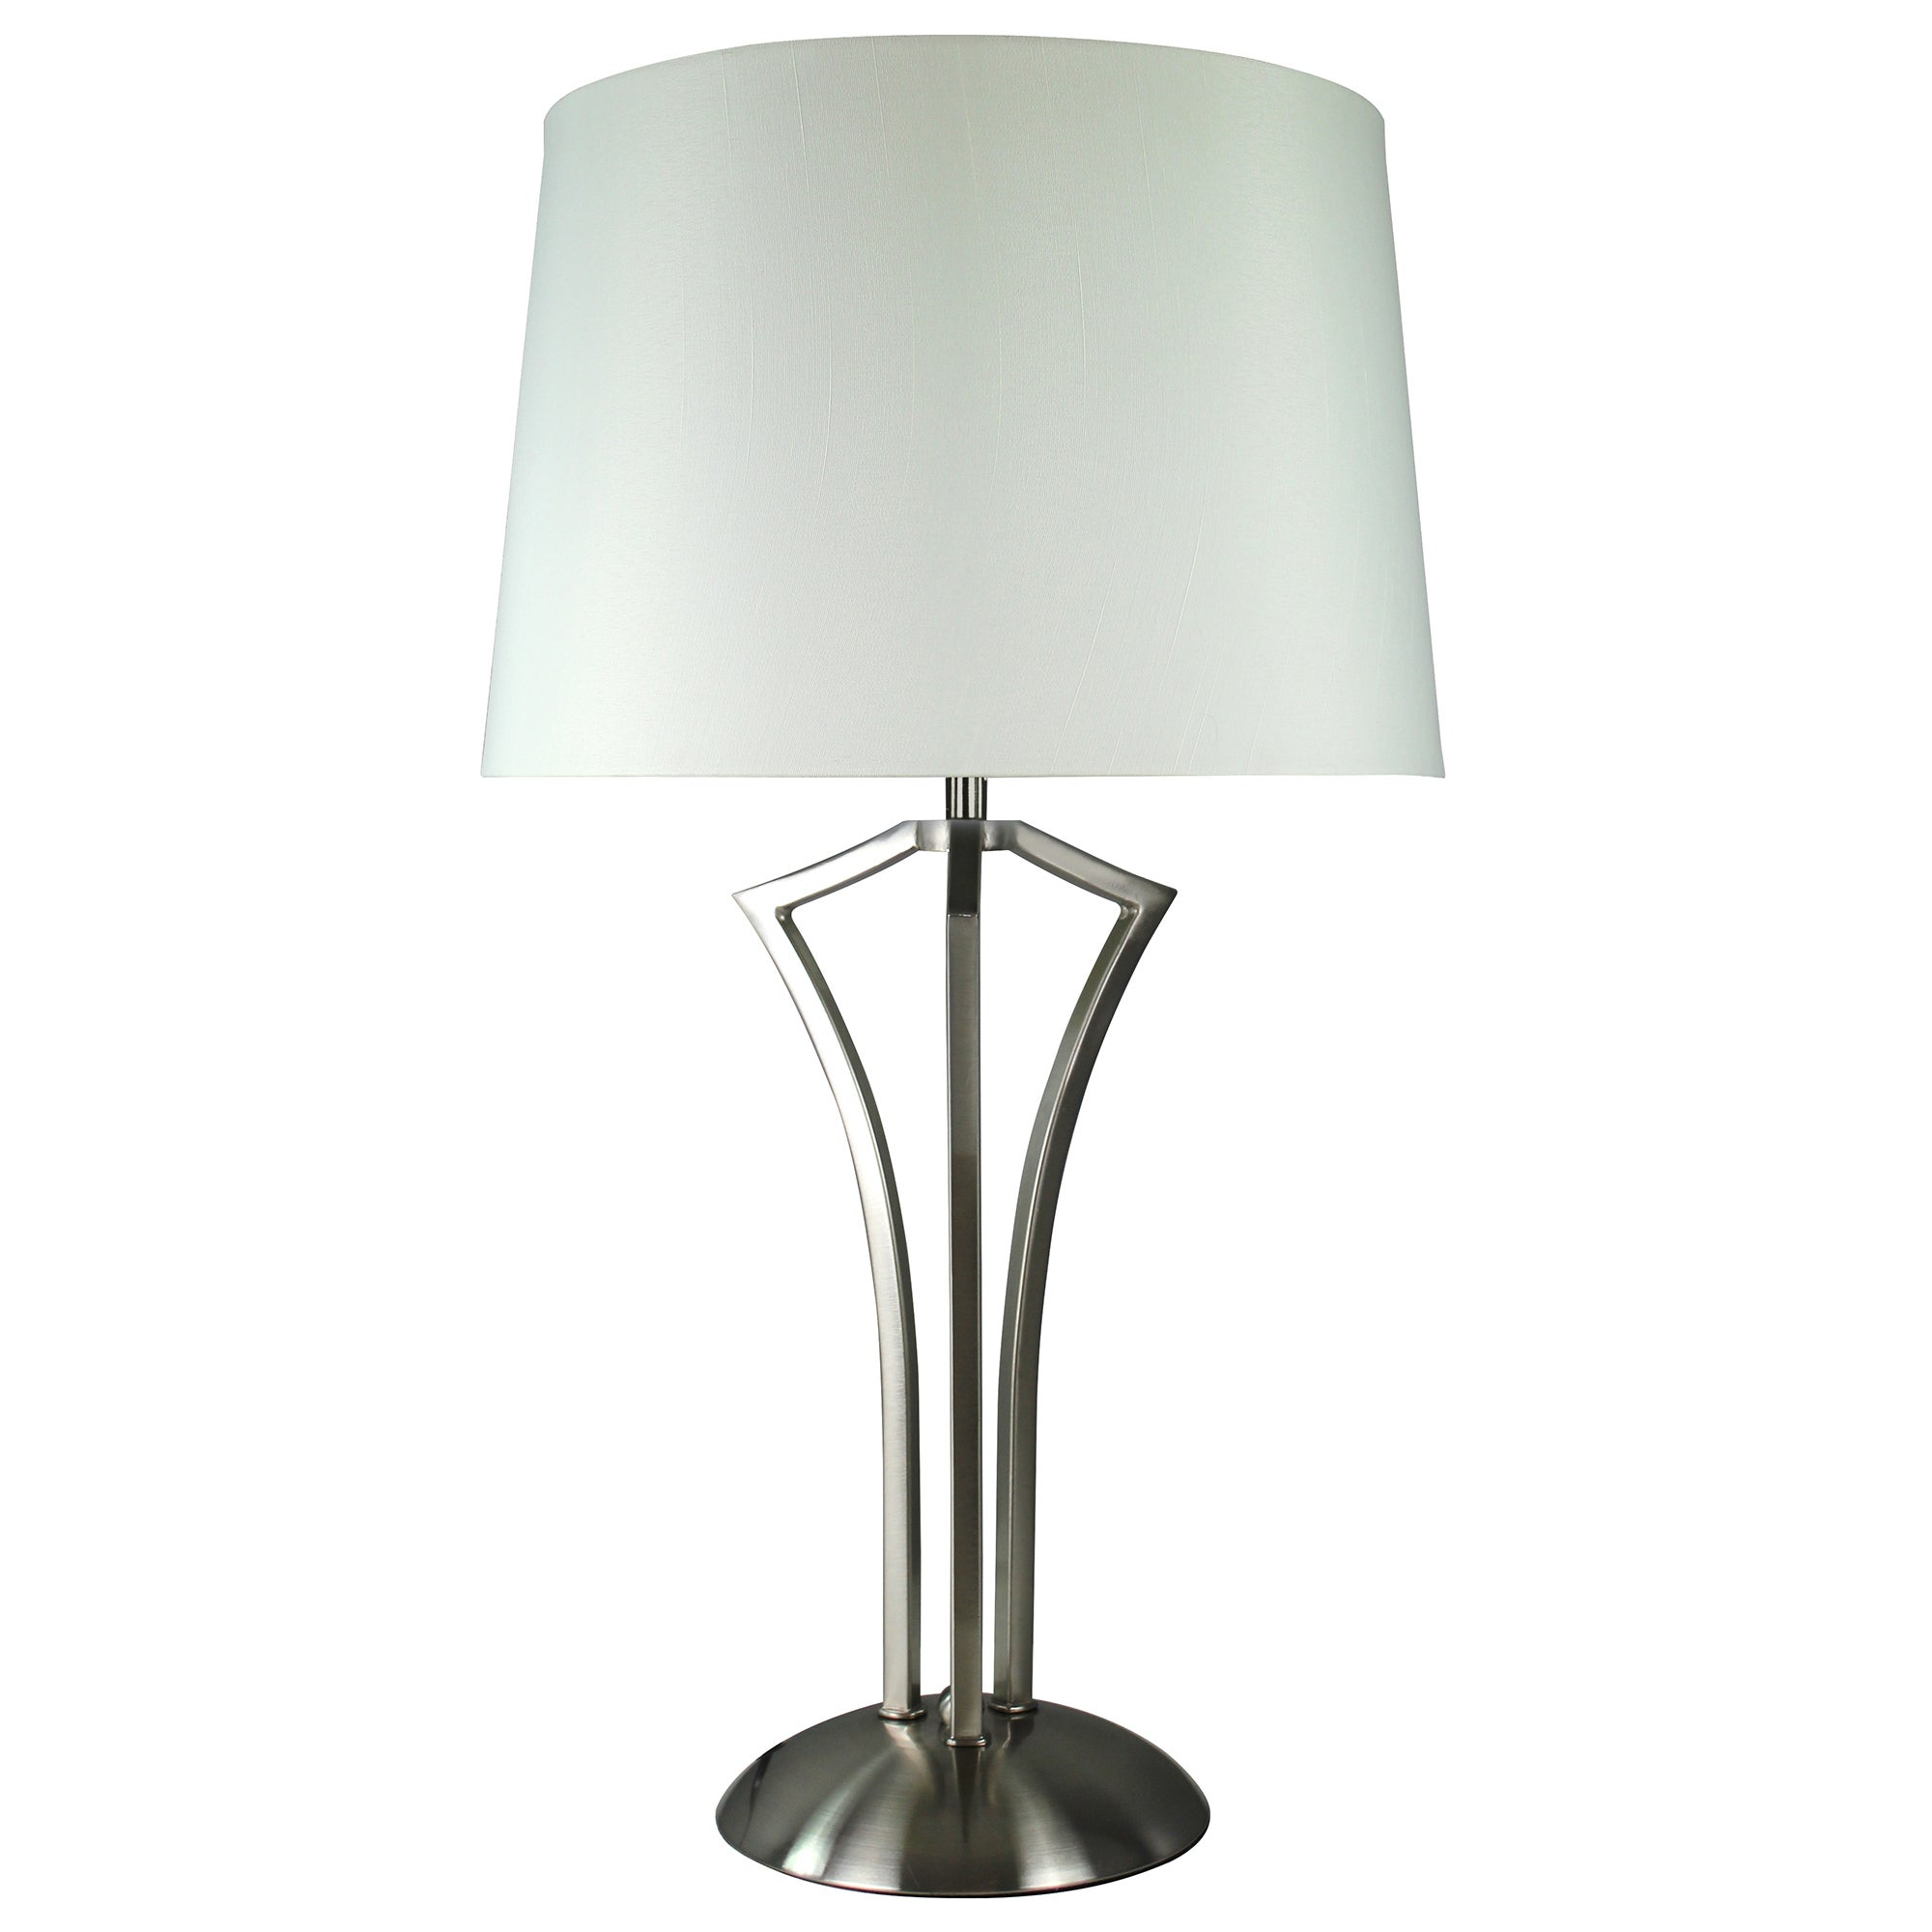 buy cheap silver table lamp compare lighting prices for. Black Bedroom Furniture Sets. Home Design Ideas